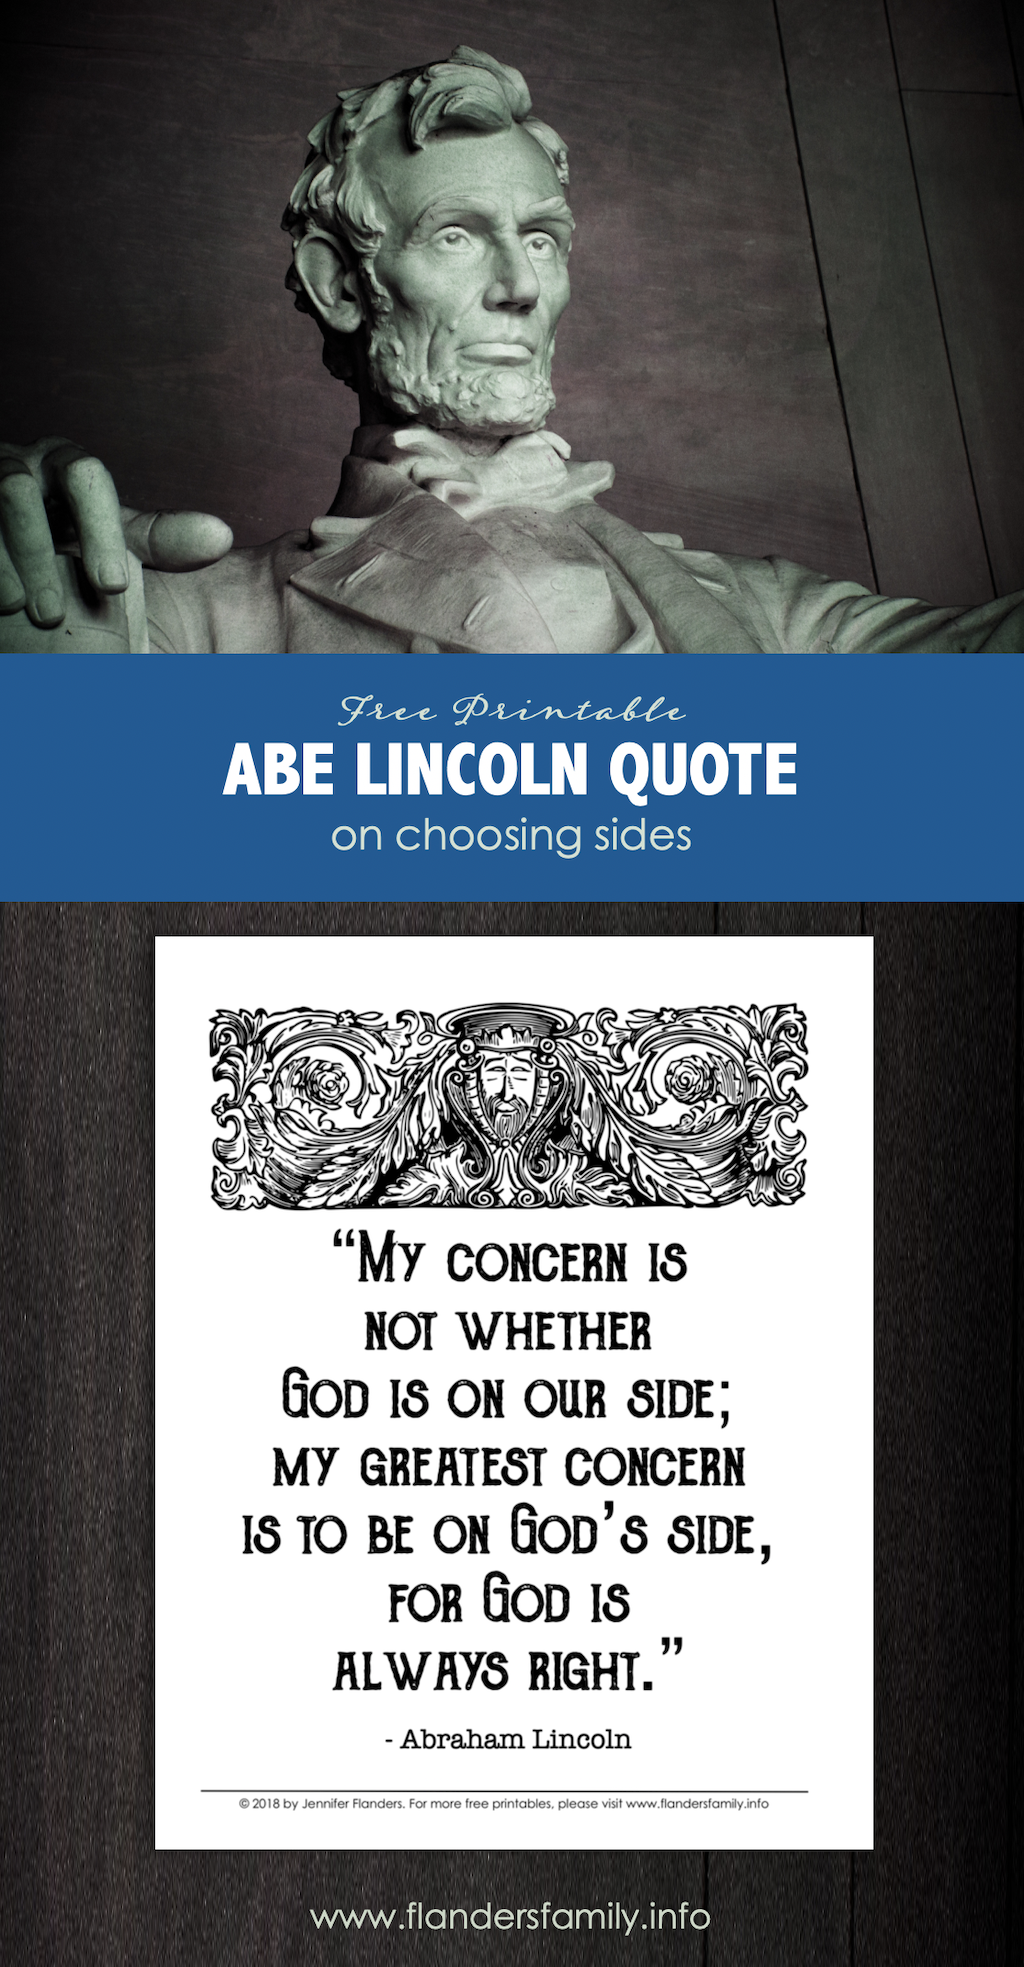 Abraham Lincoln on Choosing Sides